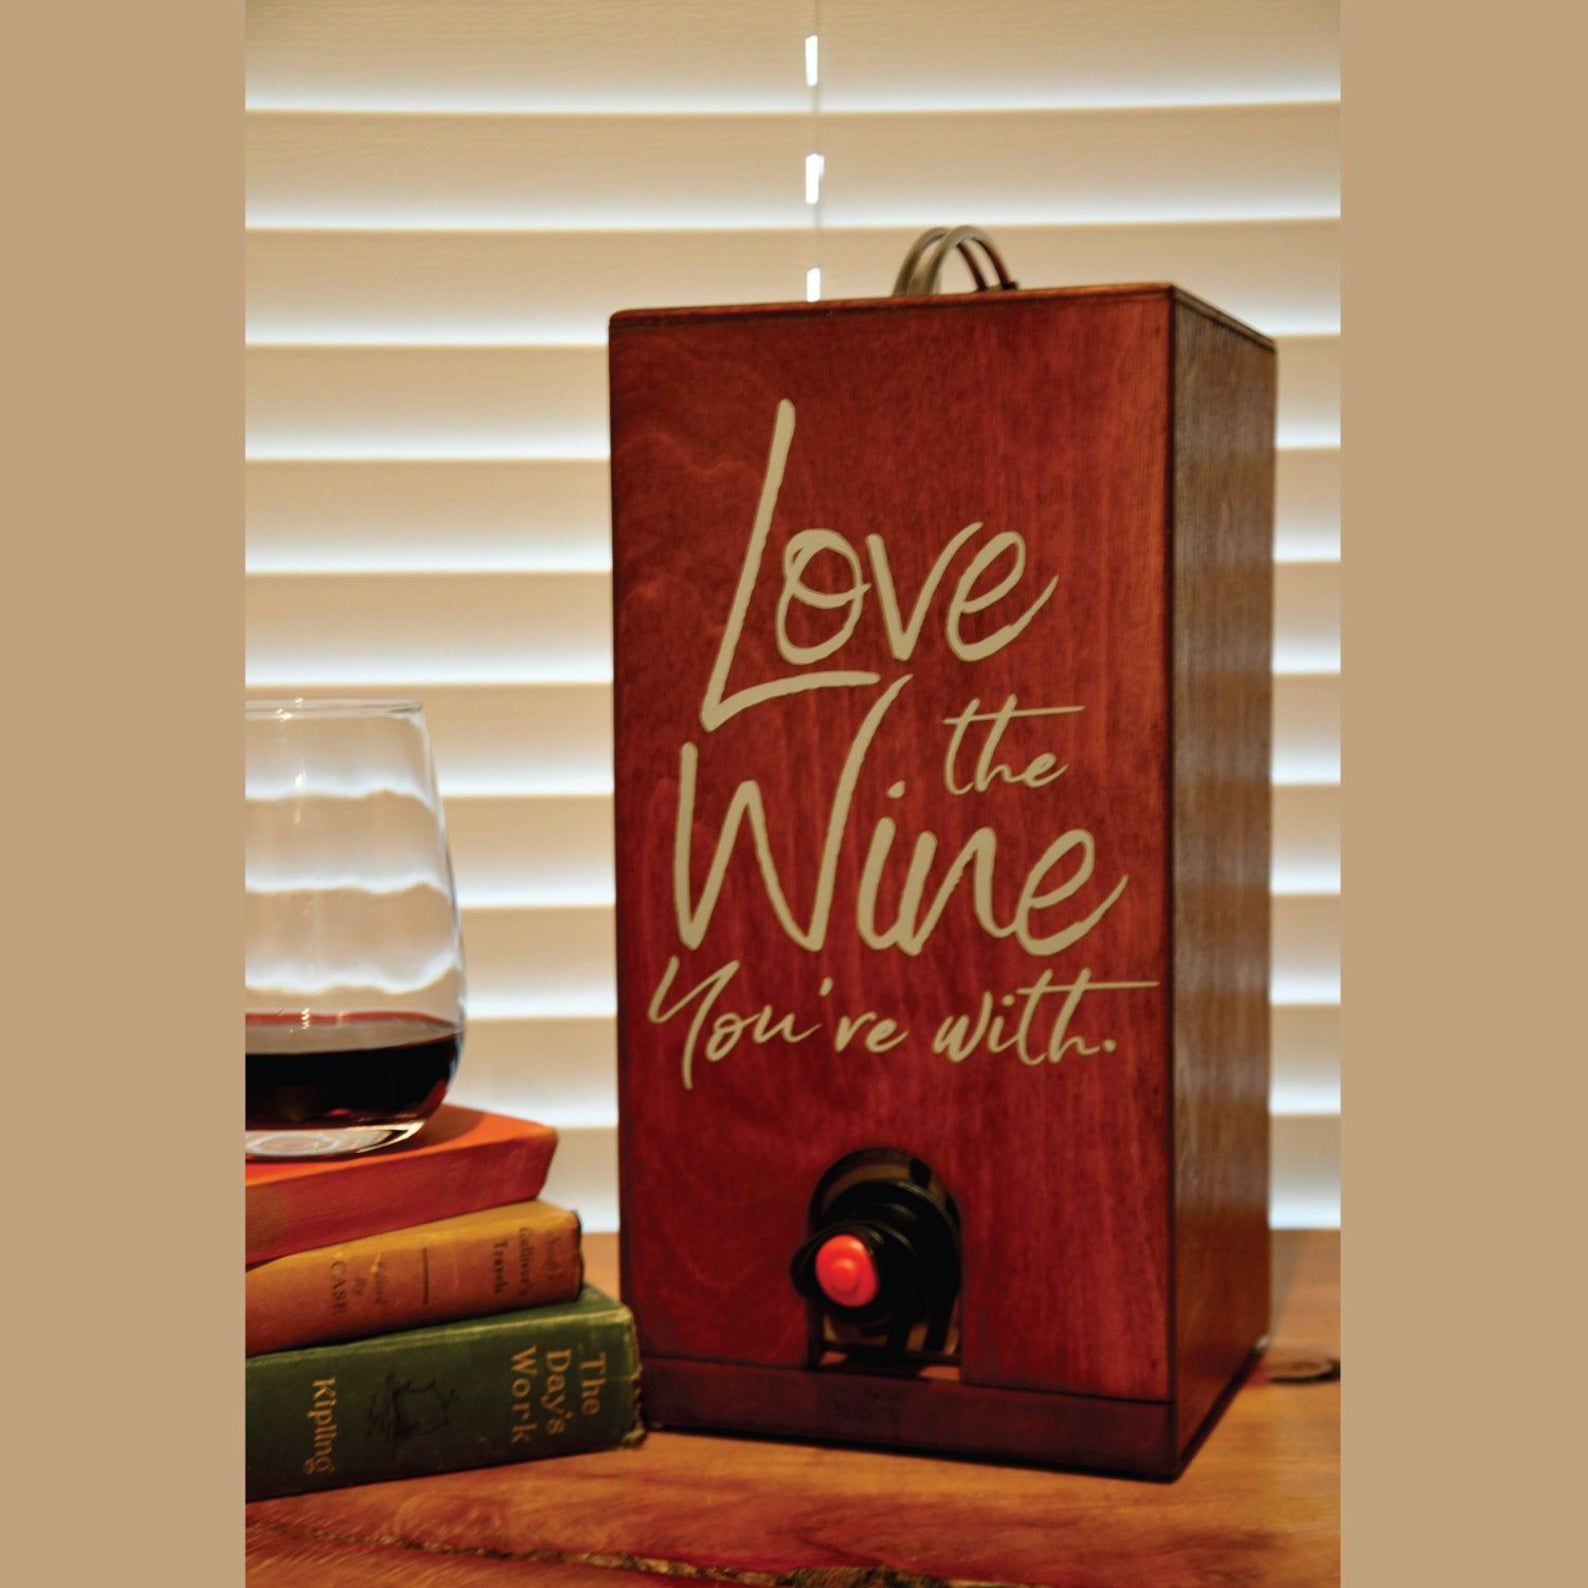 Box Of Wine Cover Holder Dispenser For Boxed Wine Wine Etsy In 2020 Wine Box Wine Box Diy Wine Gifts